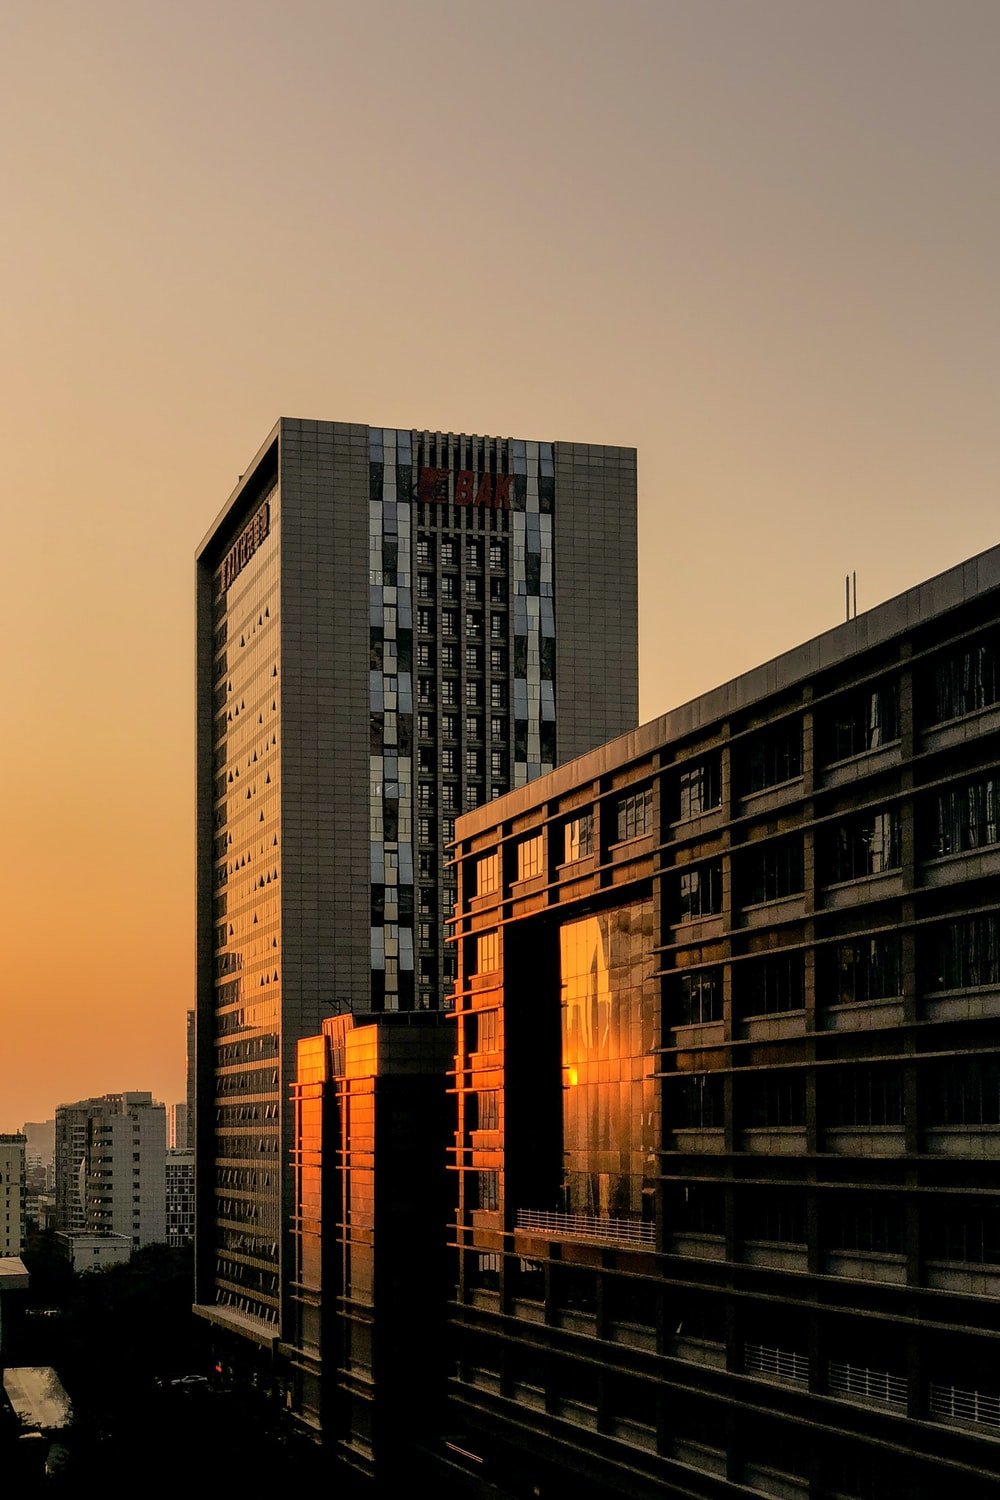 silhouette photography of concrete buildings